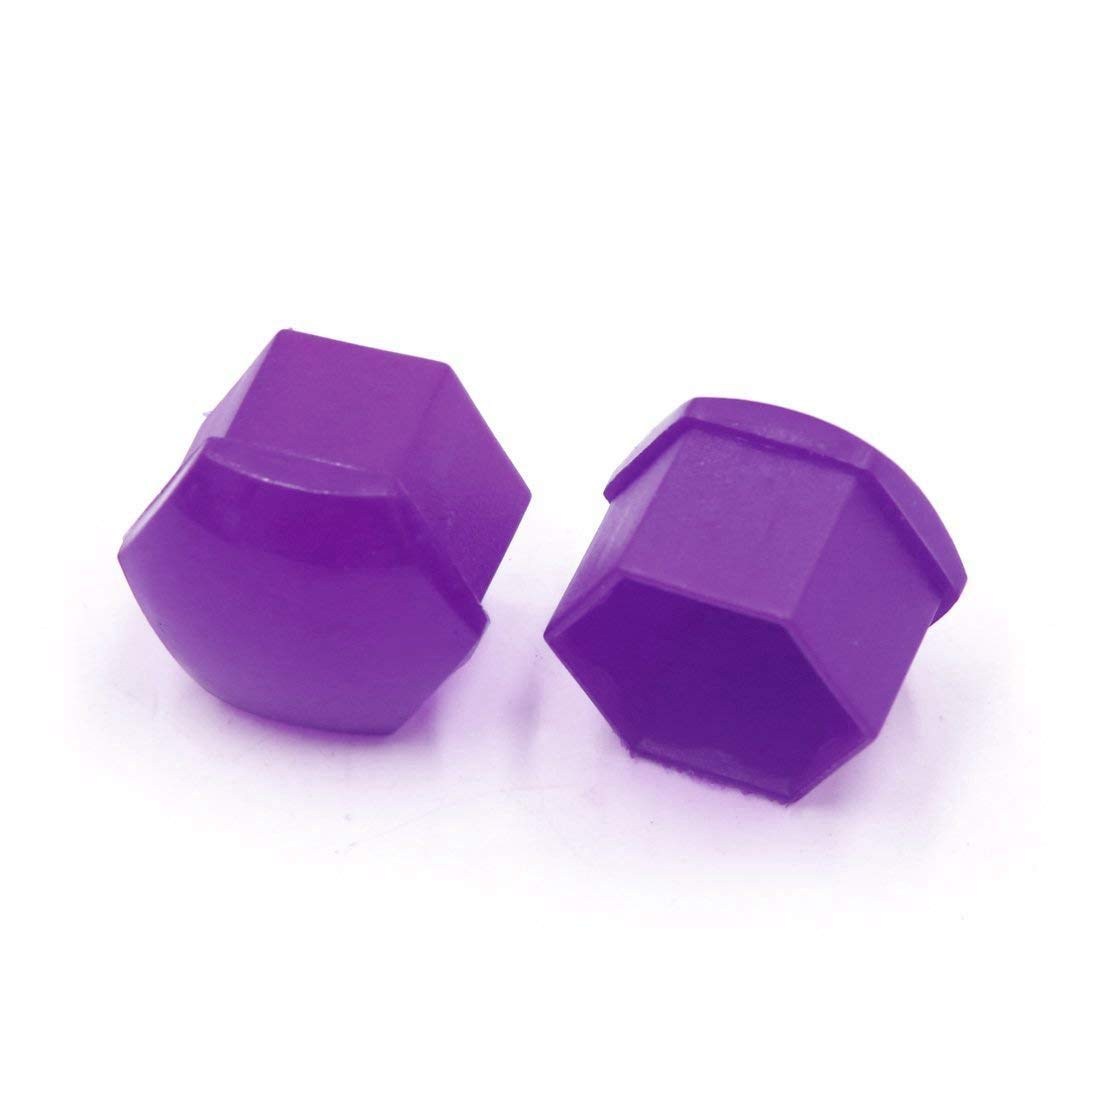 TOOGOO 20 pcs Purple Plastic Wheel Lug Nut Bolt Cover Cap with Removal Tool for Car,19mm by TOOGOO (Image #5)